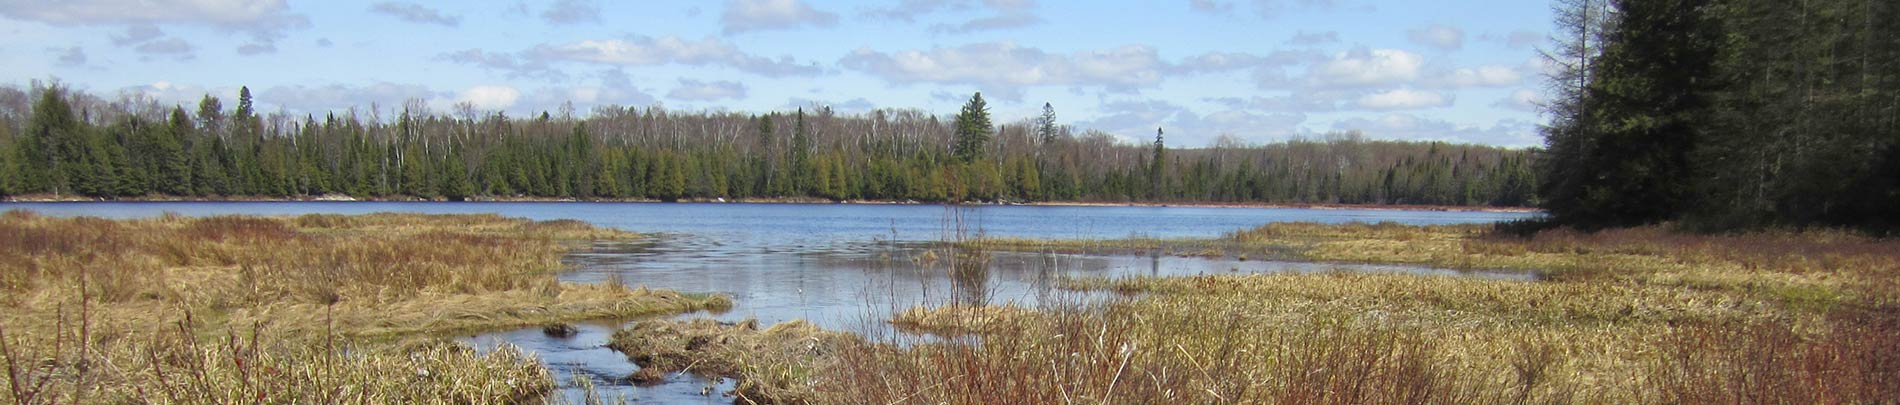 A view of Monck Lake from a reedy marsh along the portage.